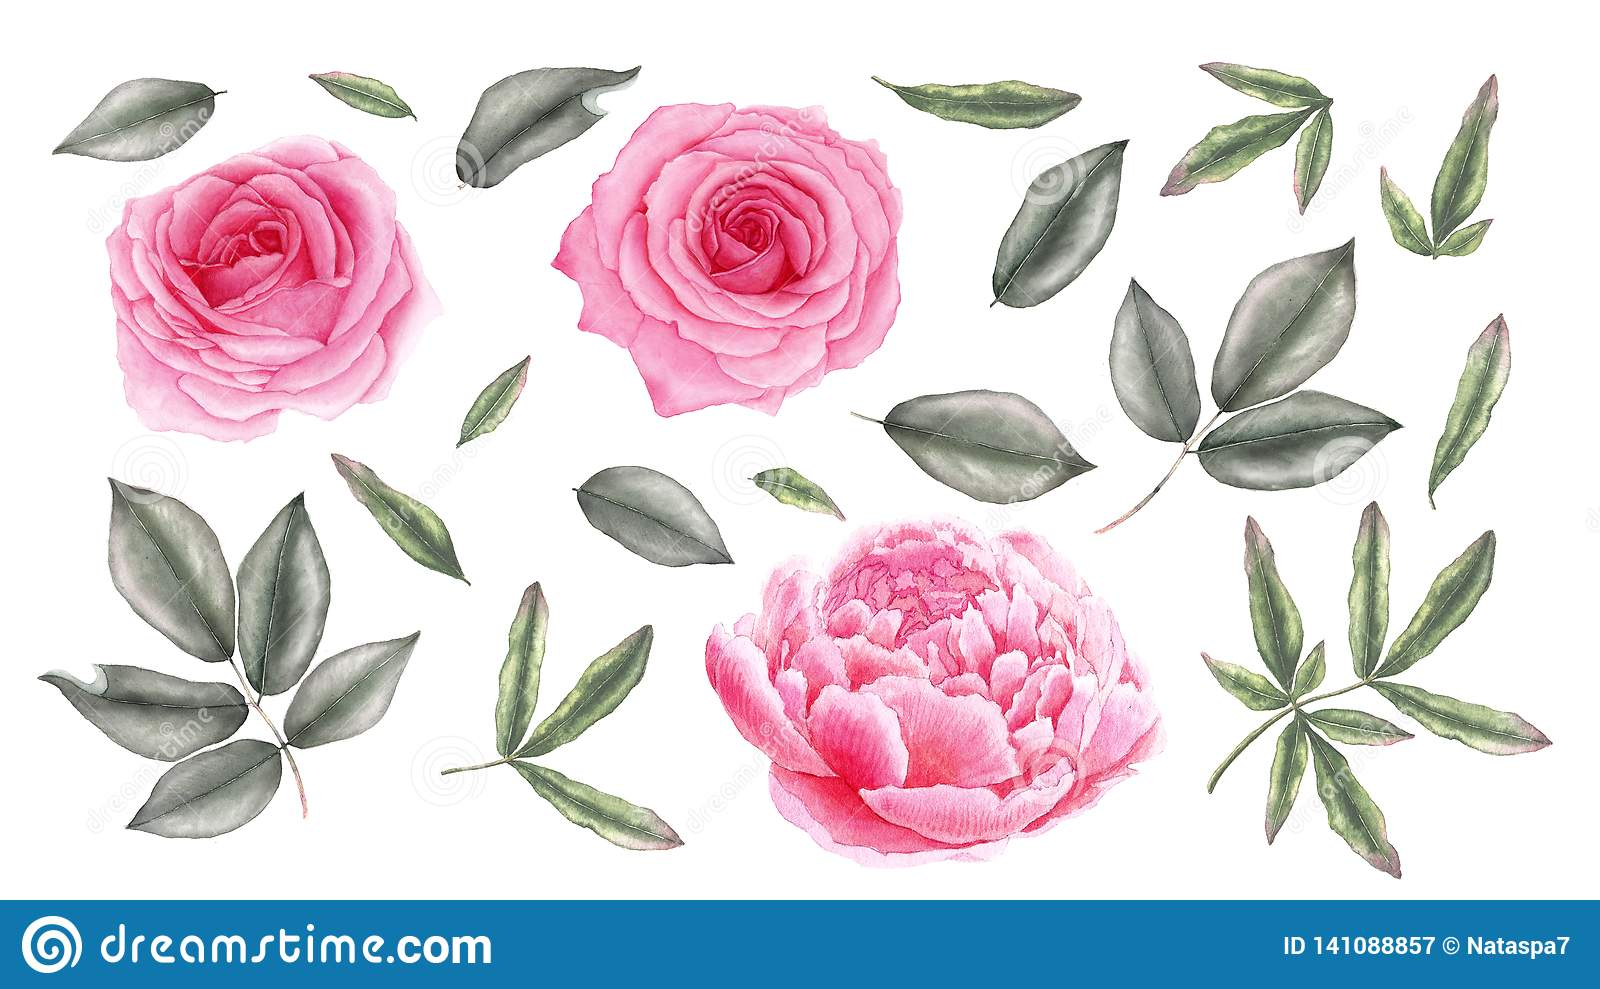 Watercolor vintage pink rose, peony flowers and leaves